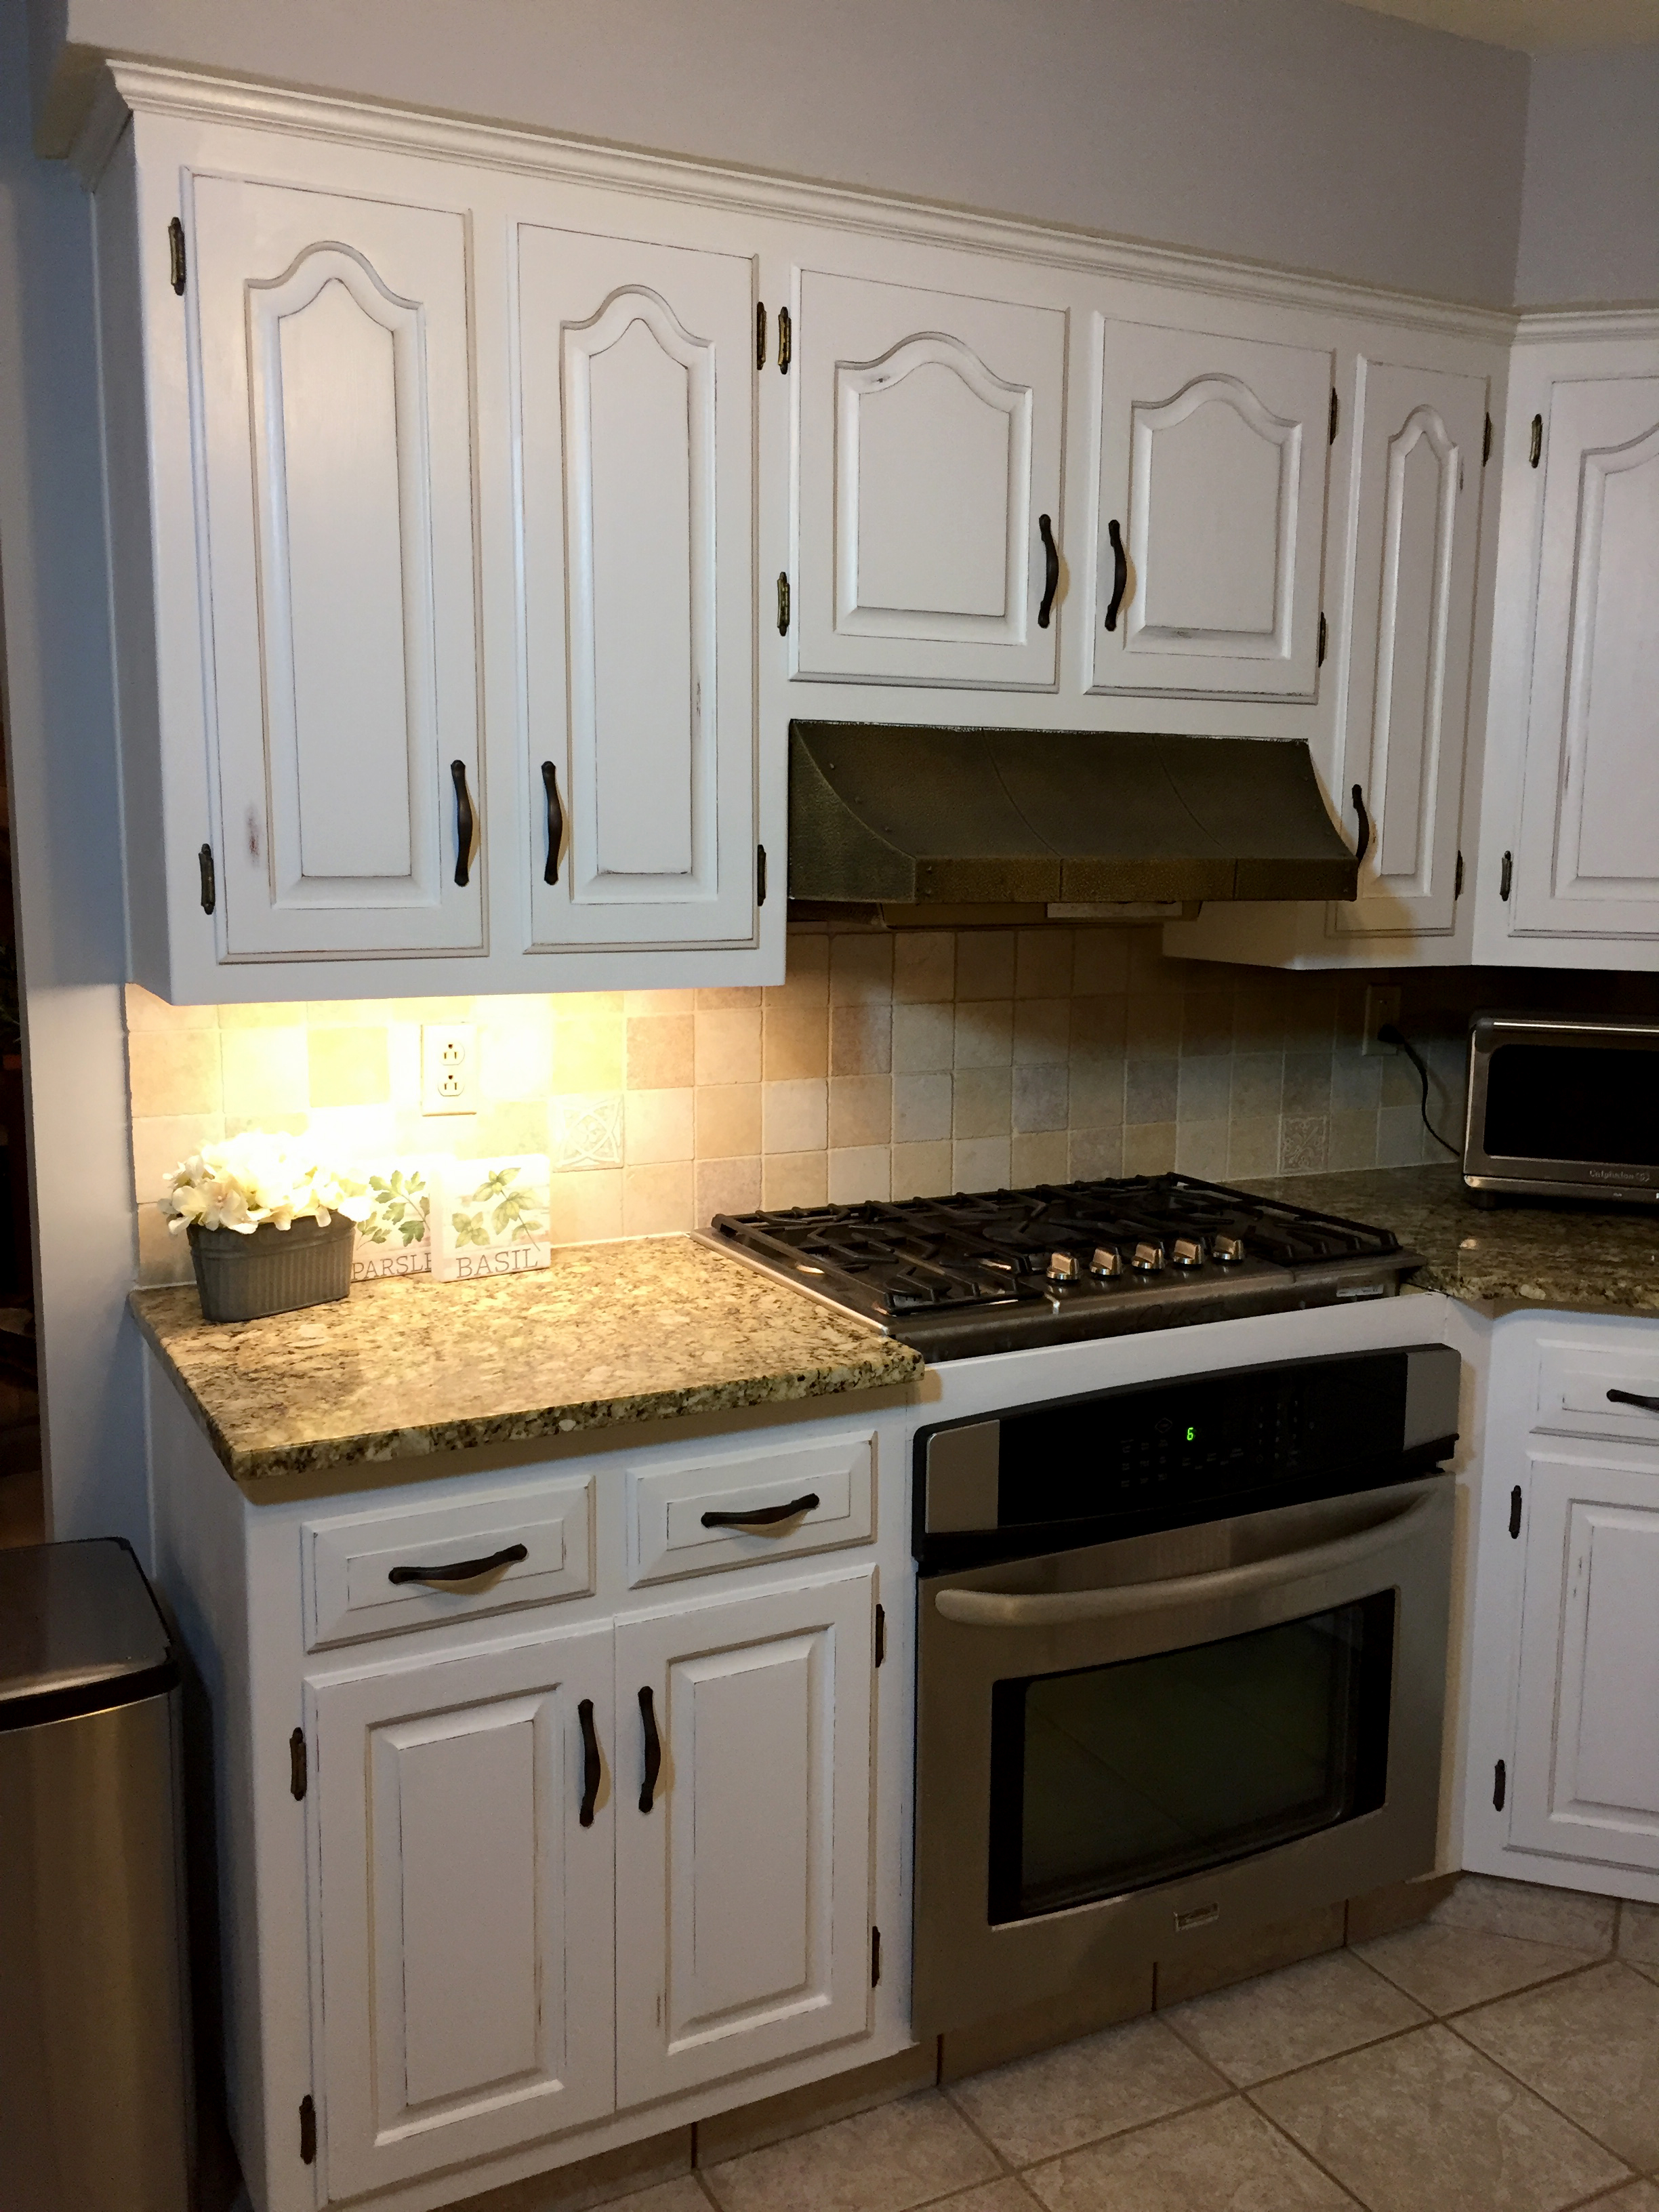 Can You Use Chalk Paint On Laminate Kitchen Cabinets